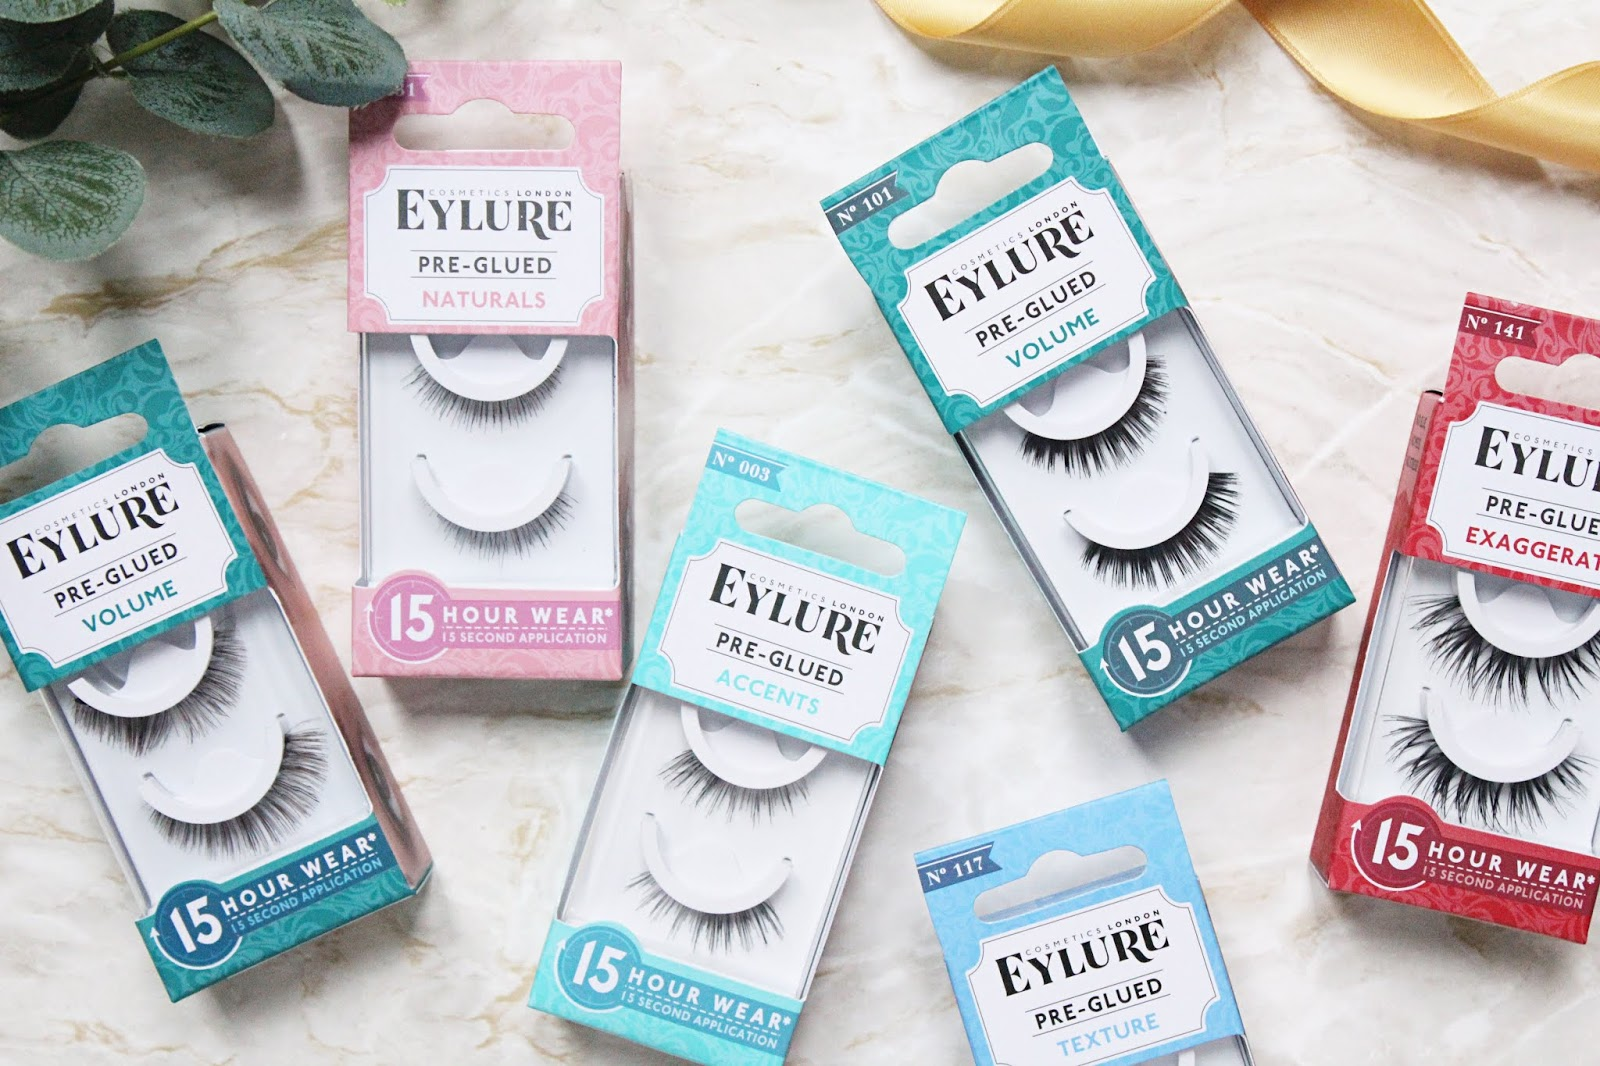 Eylure Pre-Glued Lash Collection